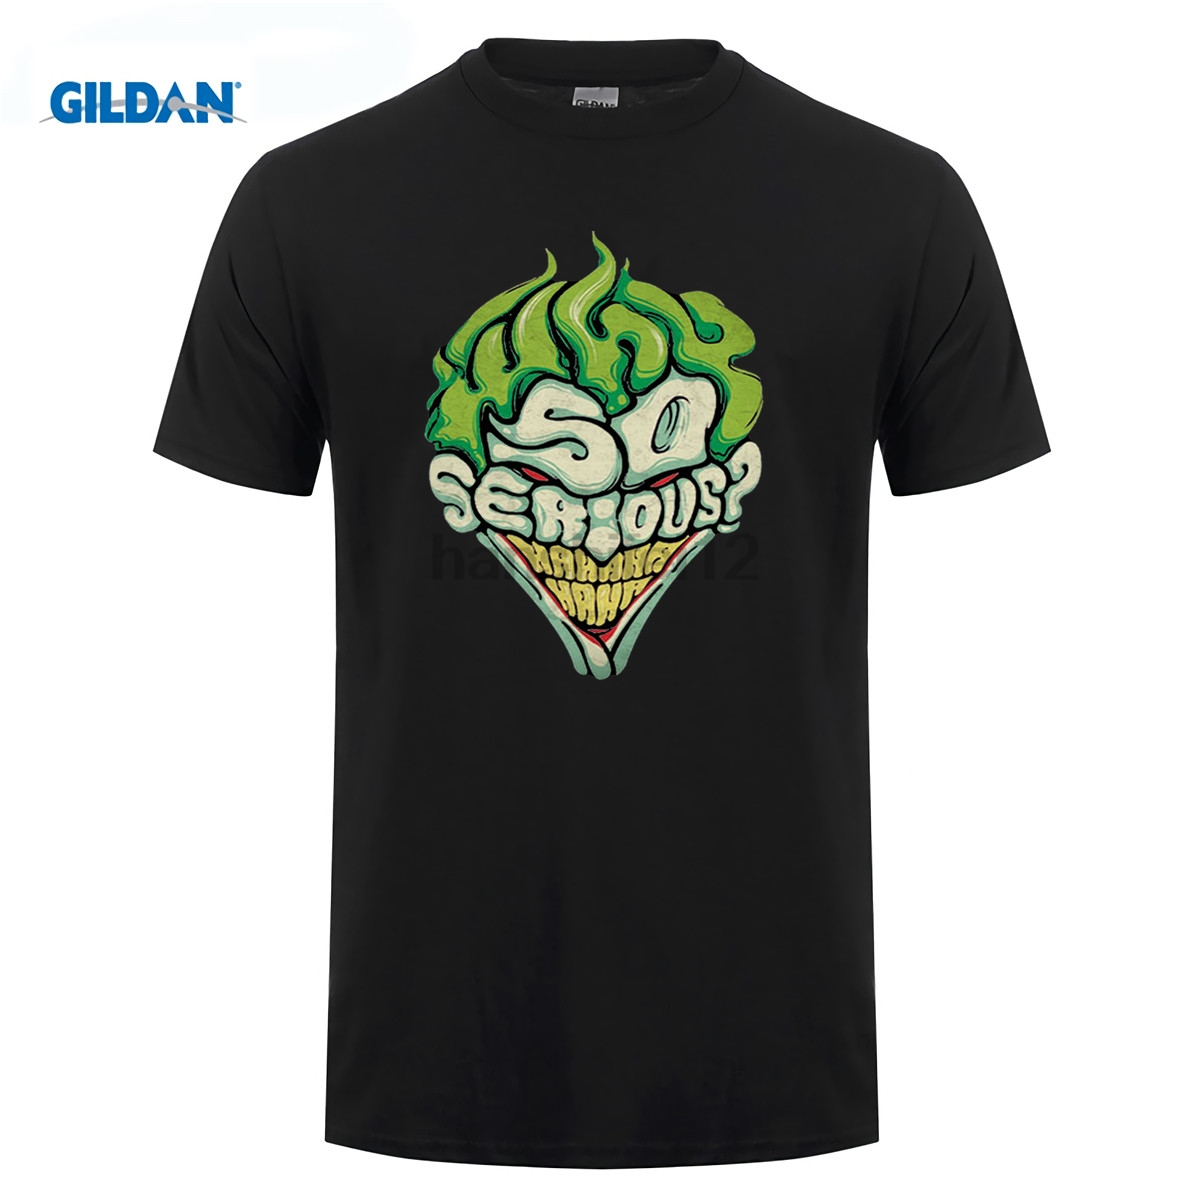 GILDAN retro t shirt JOKER SO SERIOUS clown T-shirt top lycra cotton 8292 Fashion Brand t shirt men new